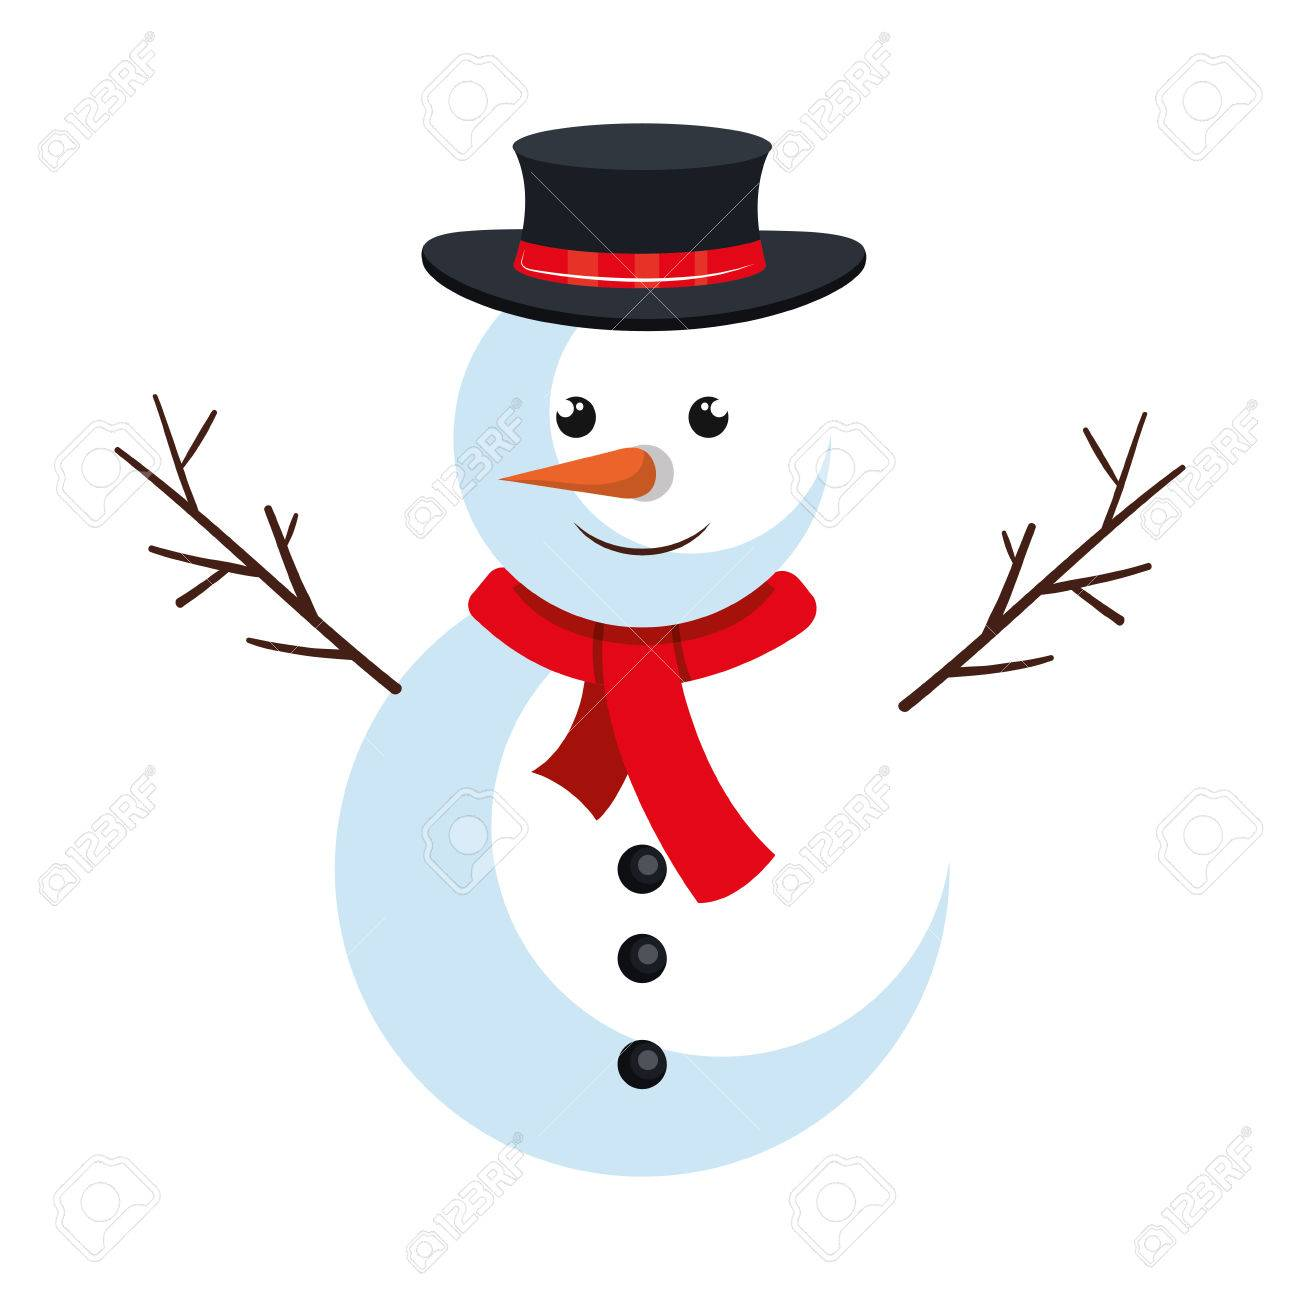 snowman cartoon with red scarf and black hat christmas symbol rh 123rf com vector snow pants vector snow pants